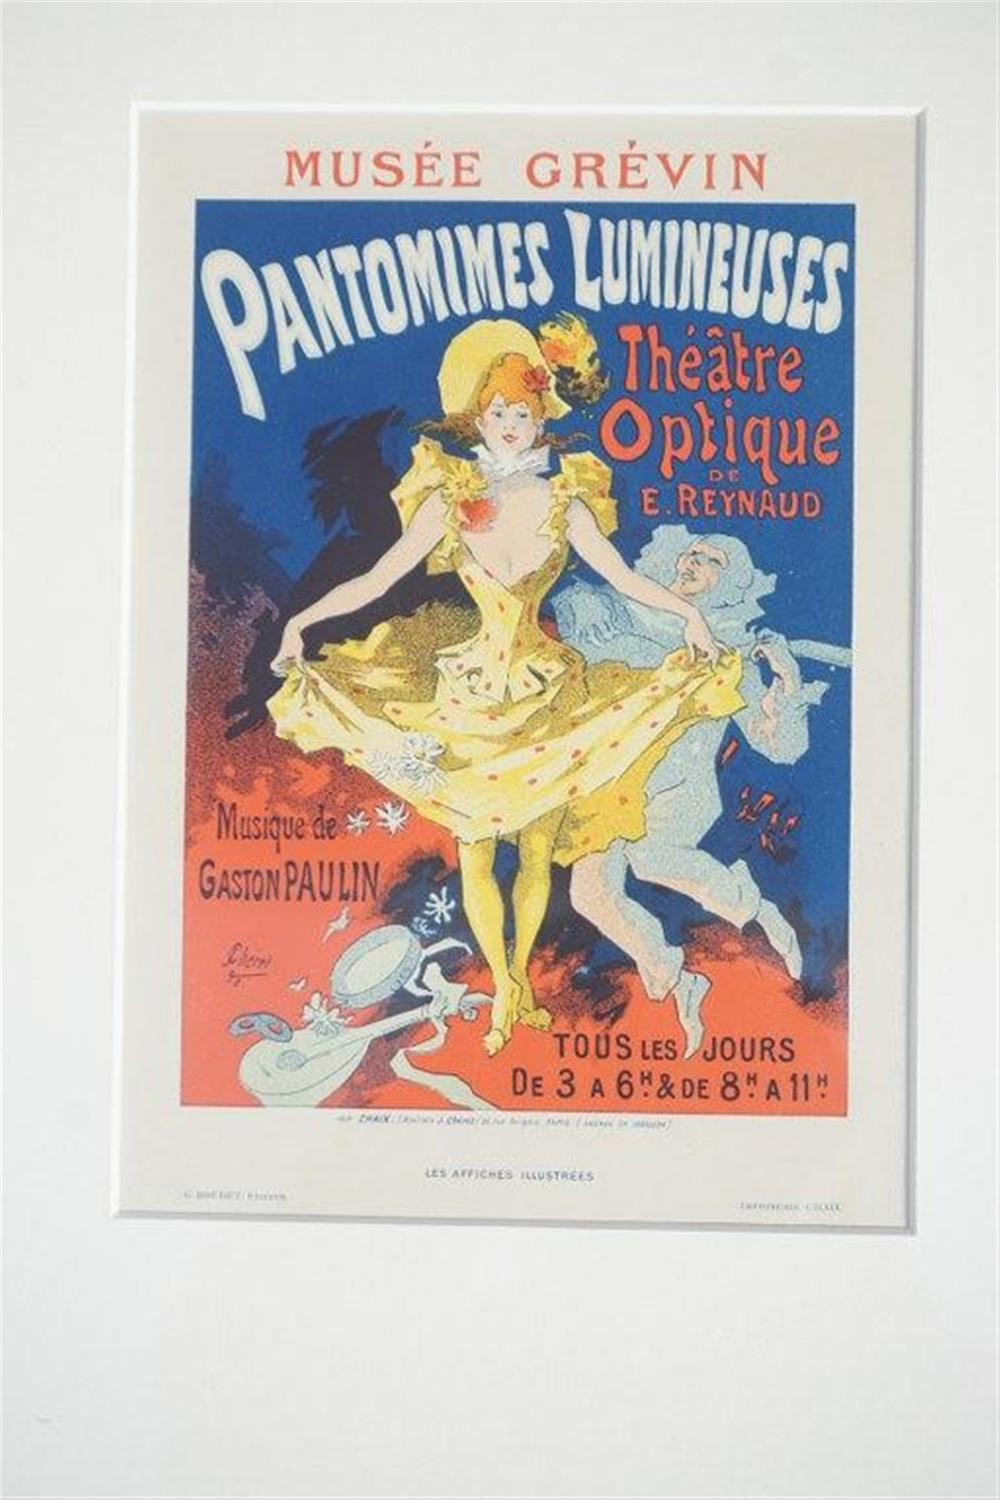 "1896 CHERET PANTOMIMES LUMINEUSES THEATRE OPTIQUE DE E. REYNAUD STONE LITHO POSTER, SHEET SIZE 8 3/4"" X 12 1/4"", EXCELLENT CONDITION, SHRINK WRAPPED AND MATTED, FROM RETIRED DEALERS COLLECTION."